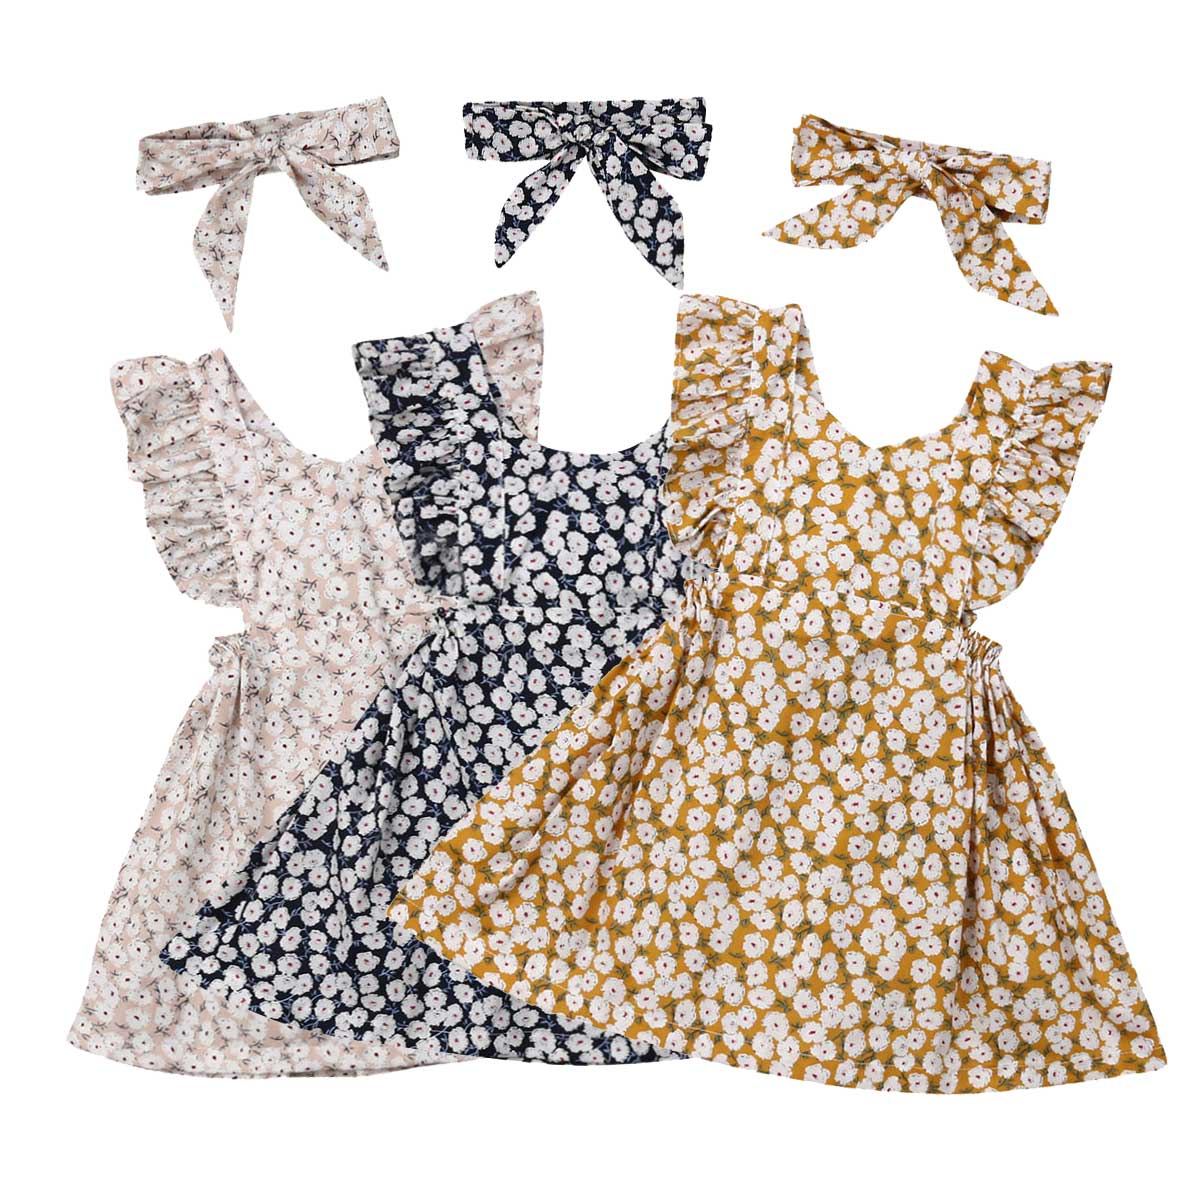 6M-4Y Toddler Baby Kids Girls Floral Dress Ruffles Sleeveless A Line Dresses For Baby Girls Vintage Flower Dress Summer Costumes